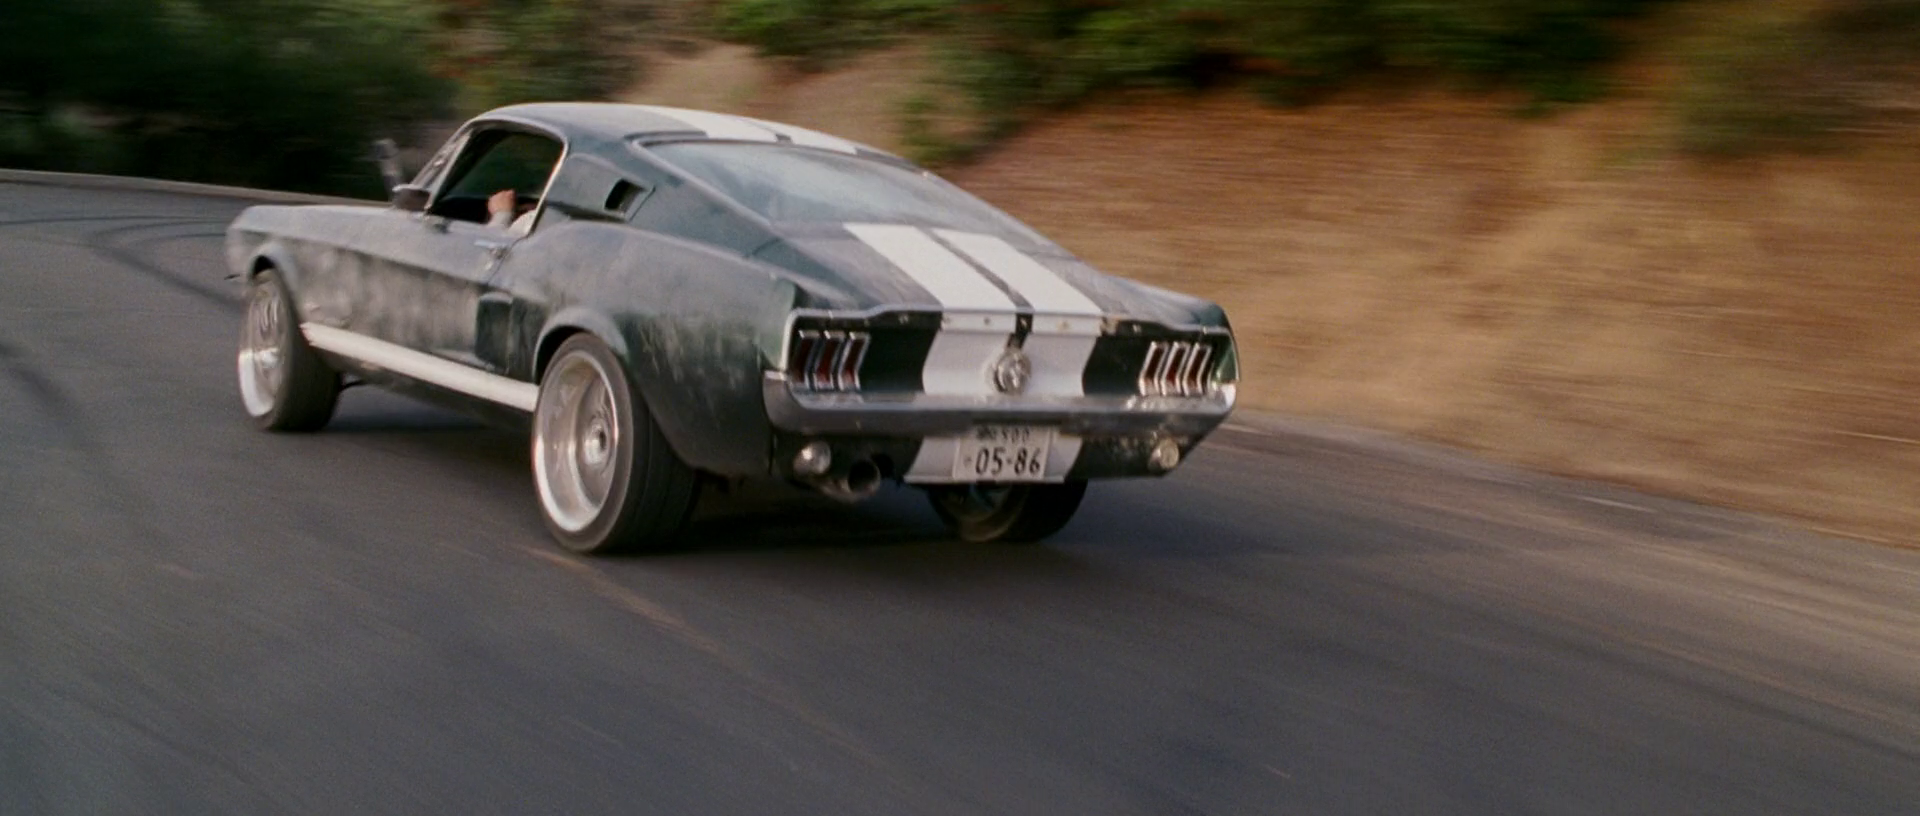 Honda S2000 Fastback >> Image - 1967 Mustang - Tokyo Drift.png | The Fast and the Furious Wiki | FANDOM powered by Wikia